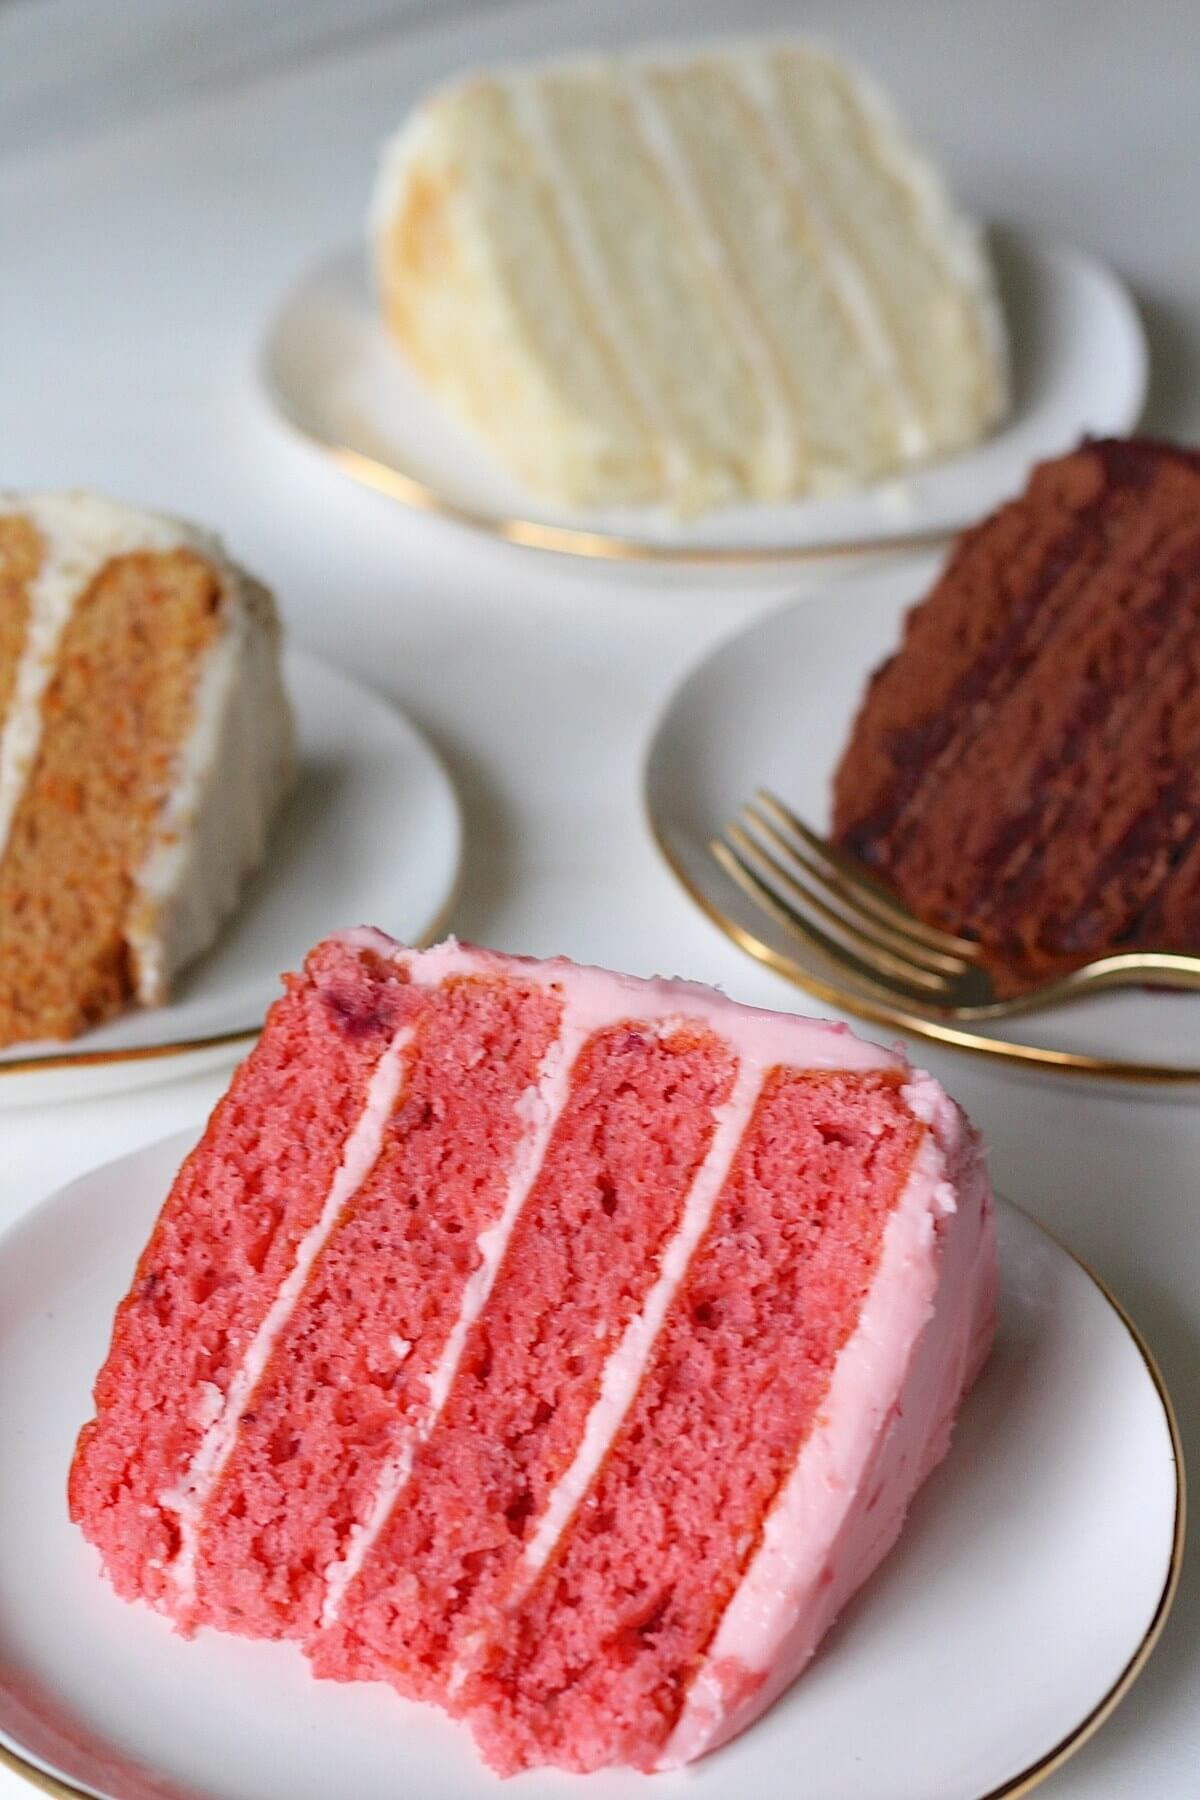 Delicious cake options from Ashley Mac's